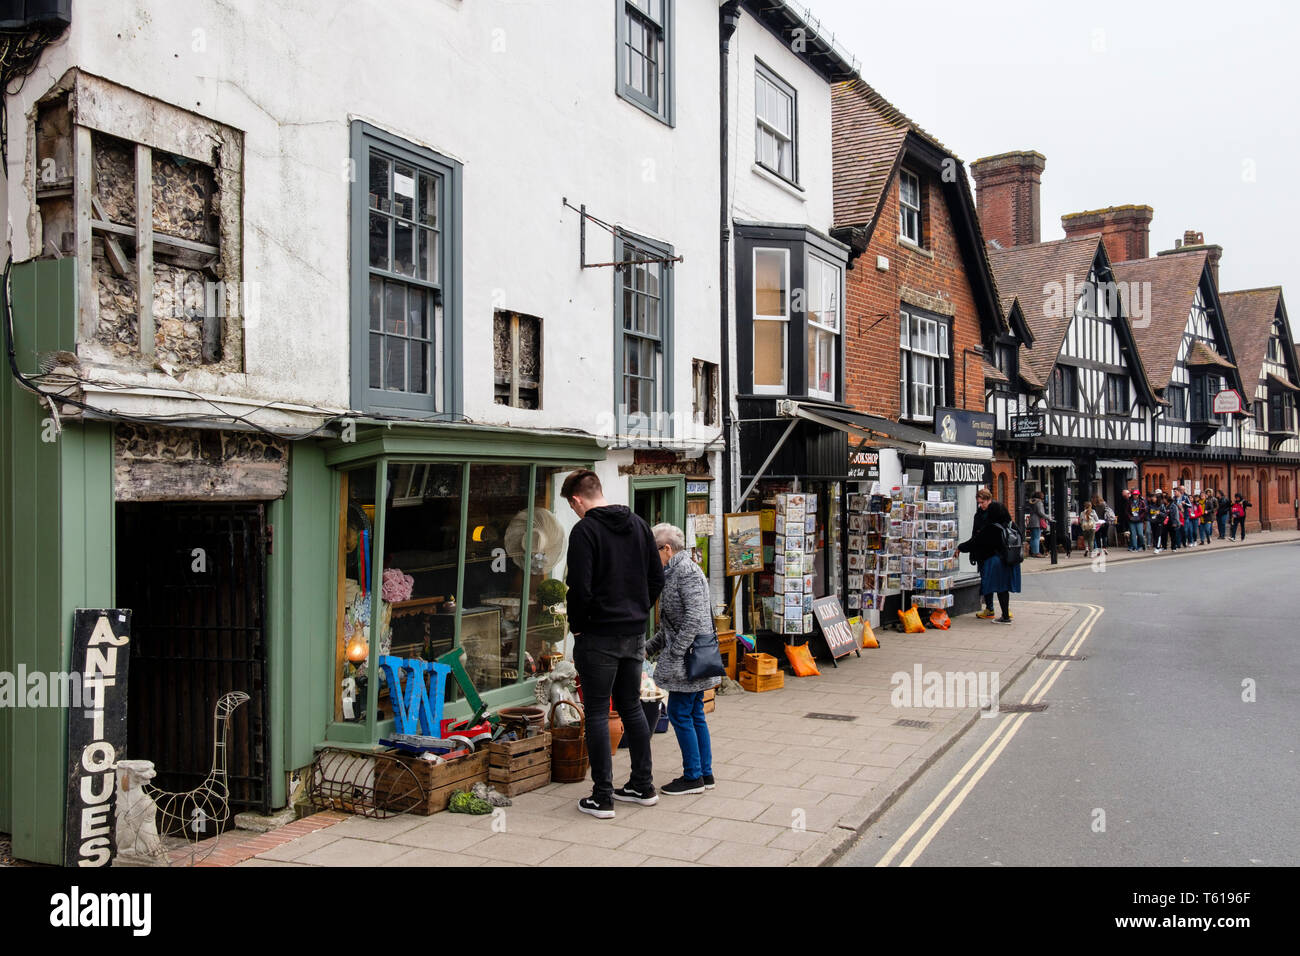 Shopers looking at antique junk items for sale outside an old Antiques shop in the High Street, Arundel, West Sussex, England, UK, Britain Stock Photo